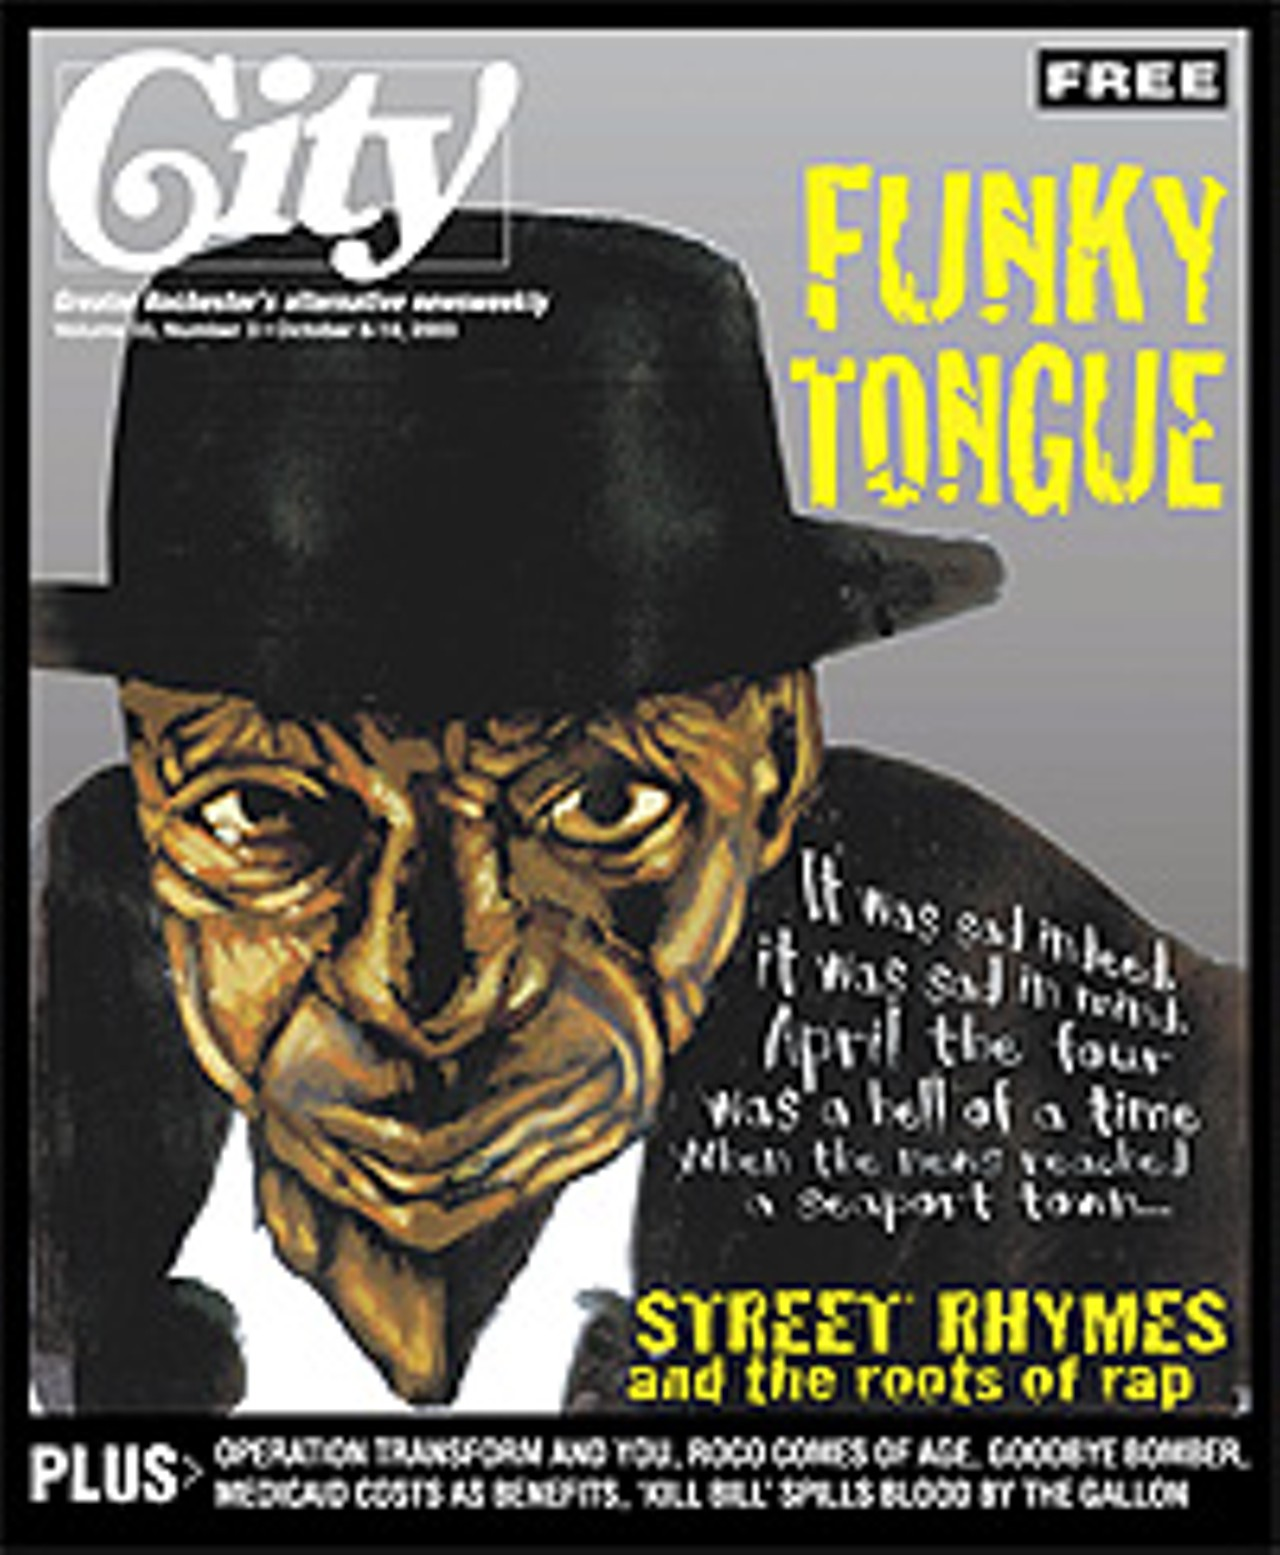 Funky tongue | Featured story | Rochester City Newspaper